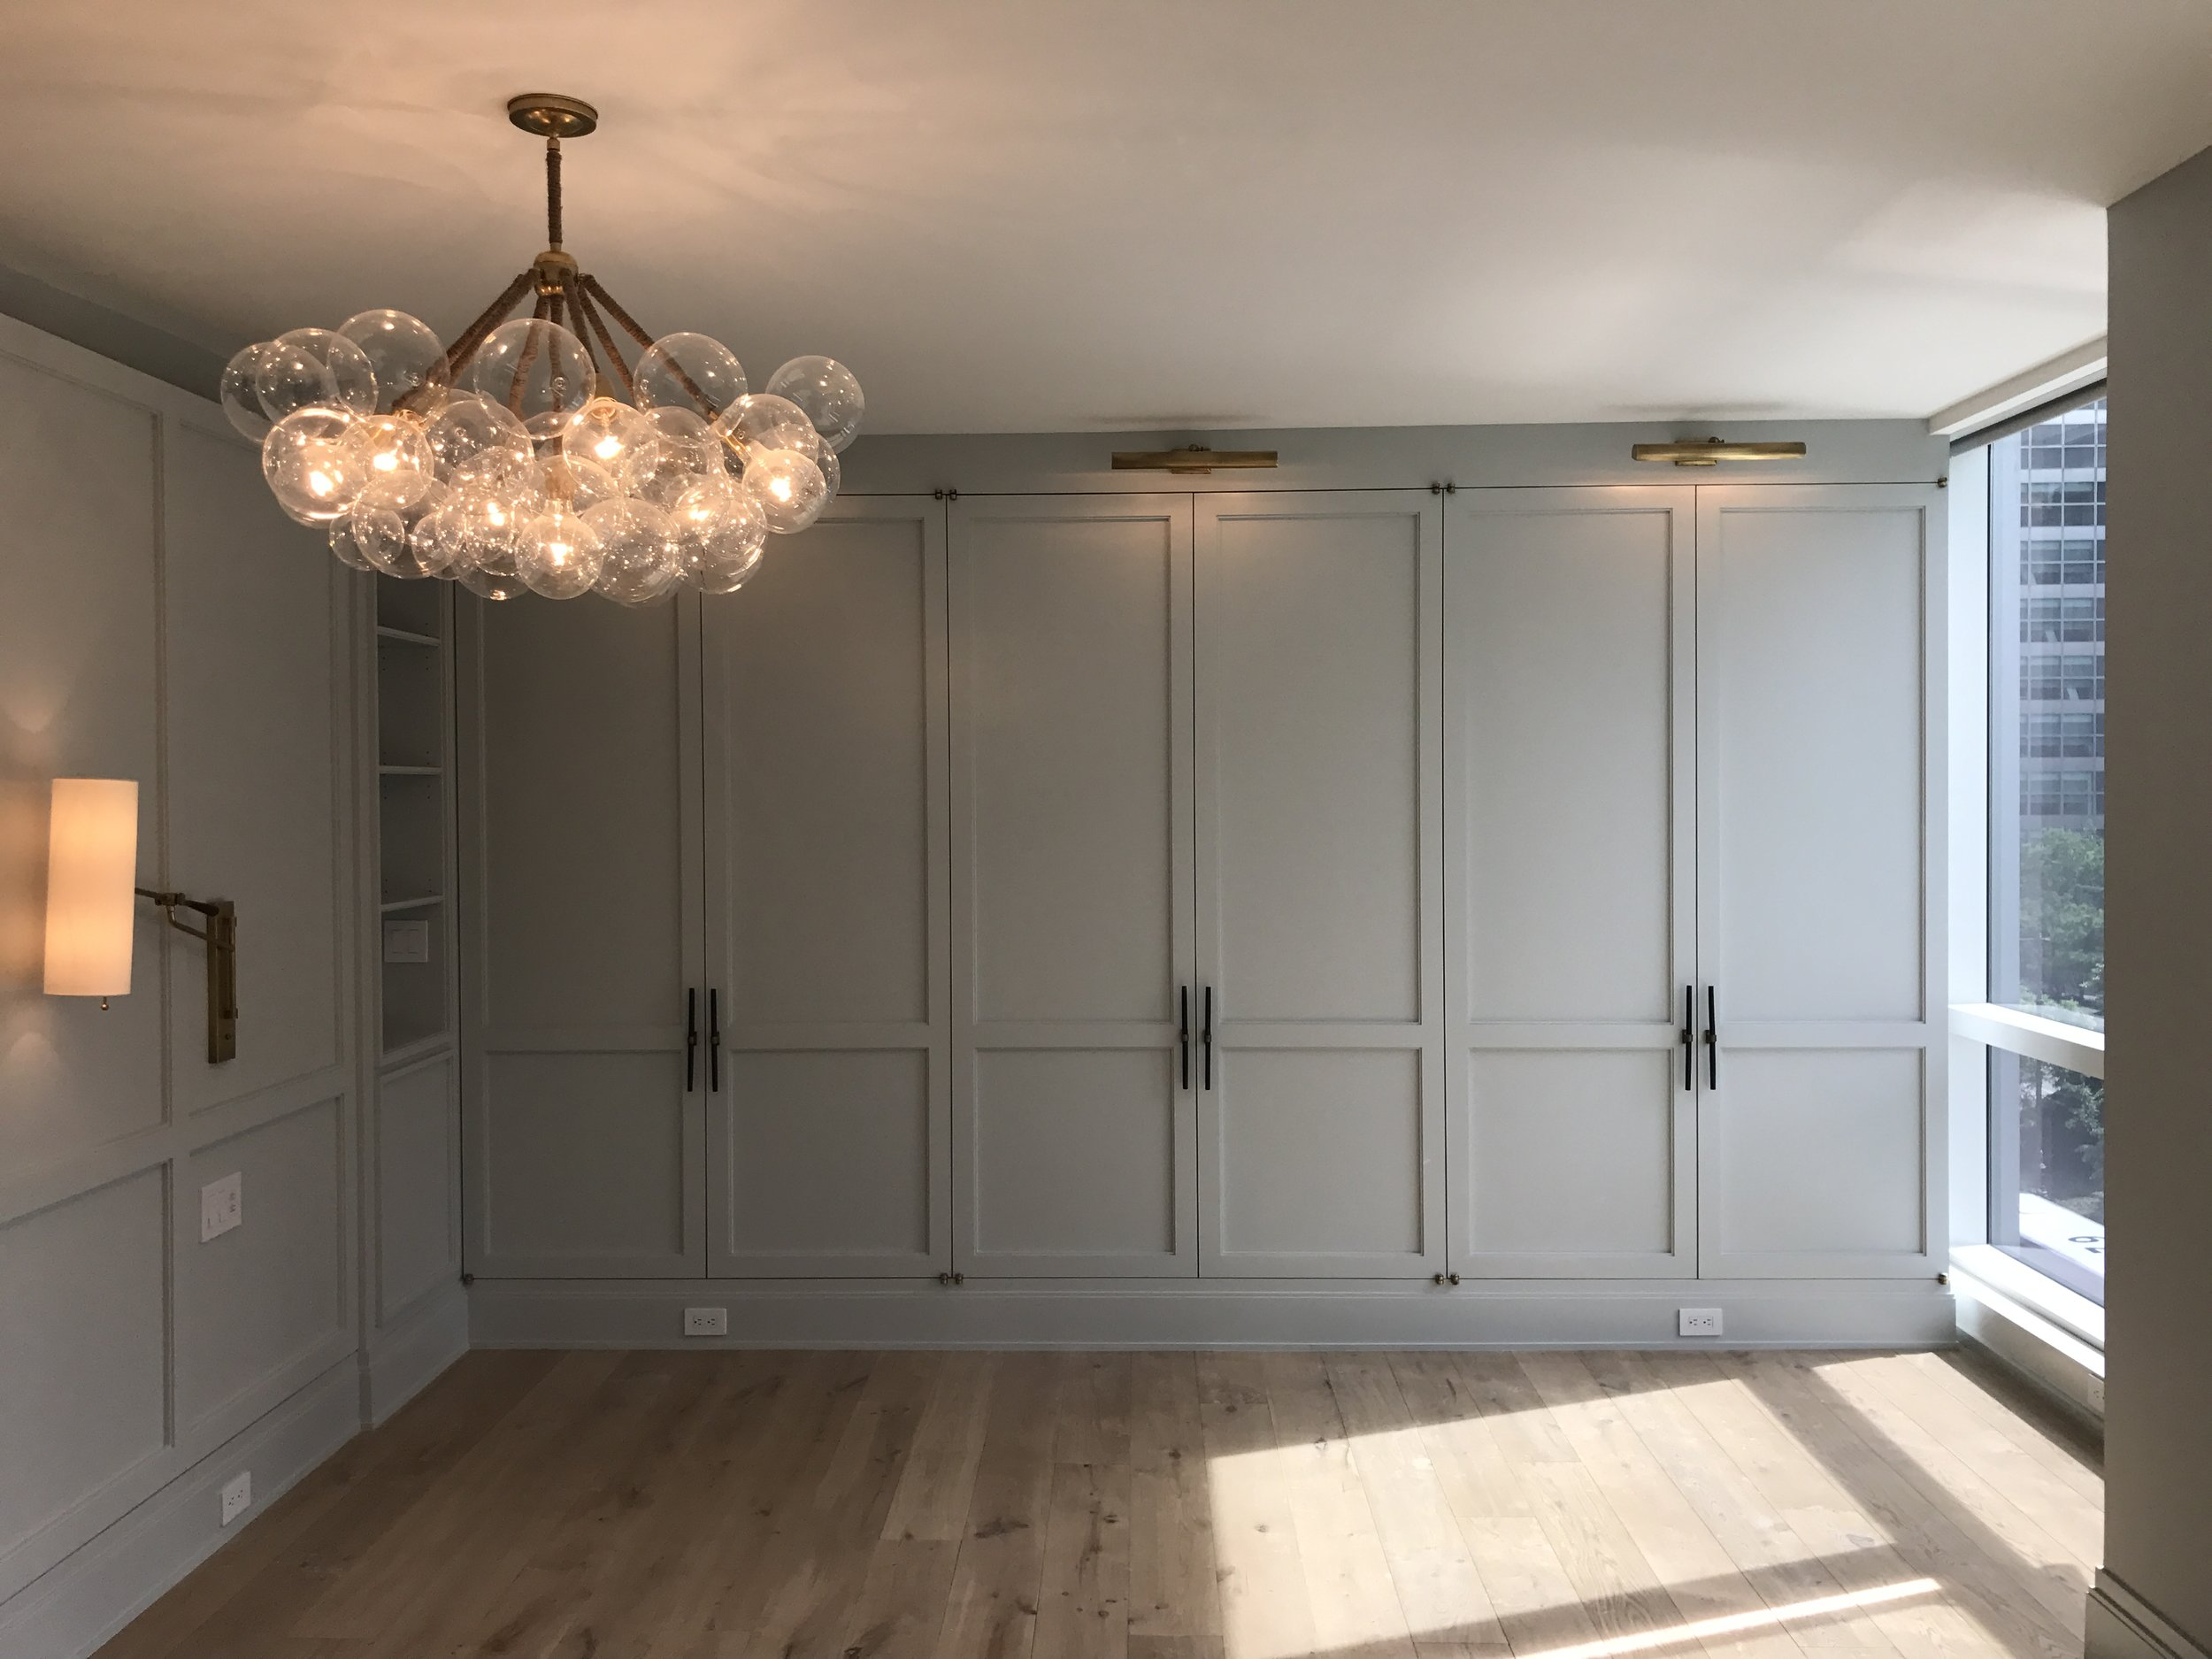 Paneled beautifully with an offset design, beautiful horn hardware for the wall of custom closets, painted in Skylight from Farrow and Ball, sconces in antique brass and linen and chandelier inspired by Pelle.